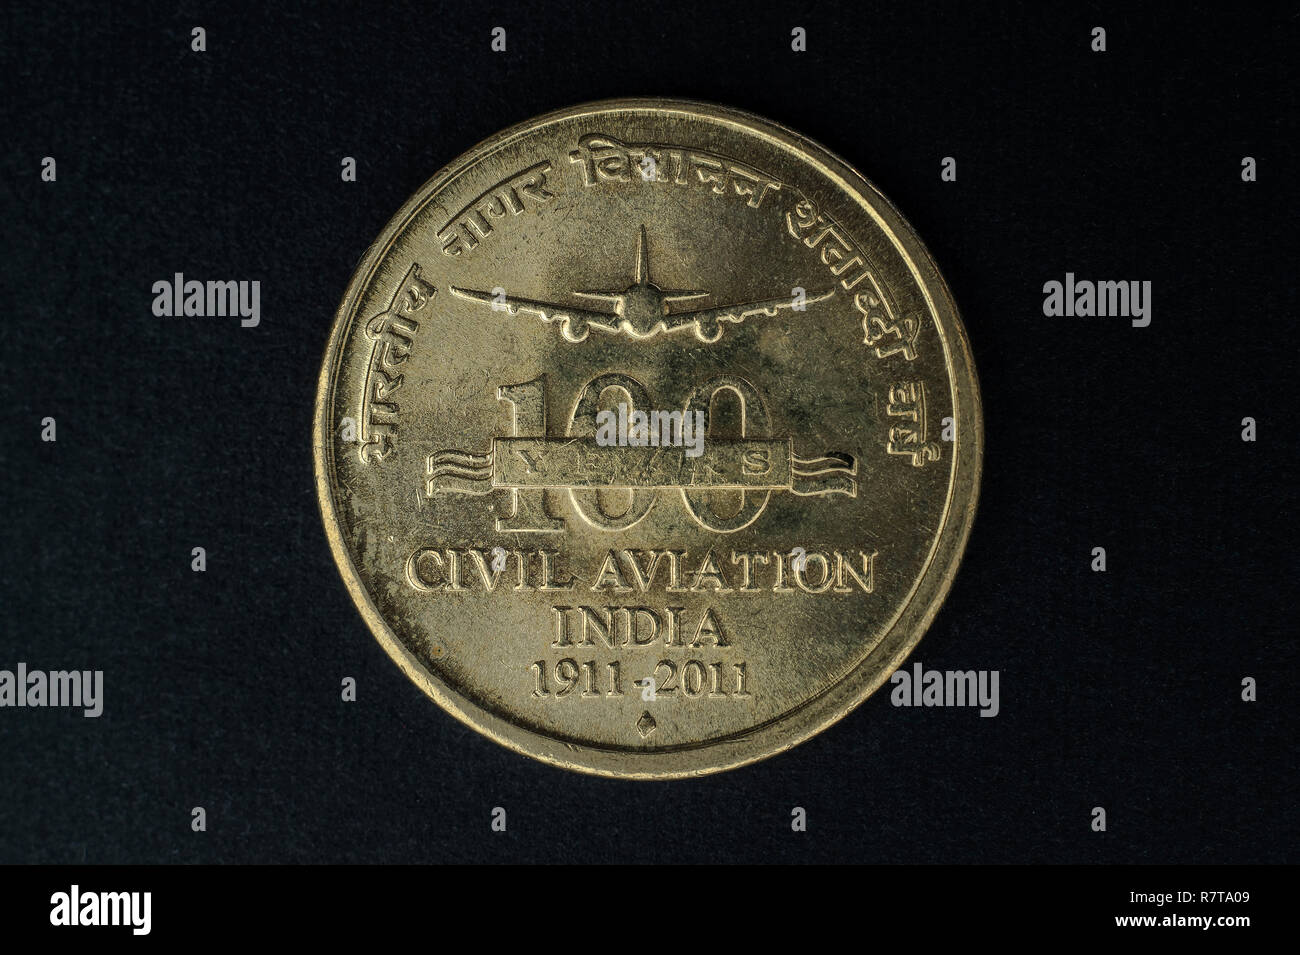 04-Oct-2015- 5 Rupees coin 100 Years of Civil Aviation in